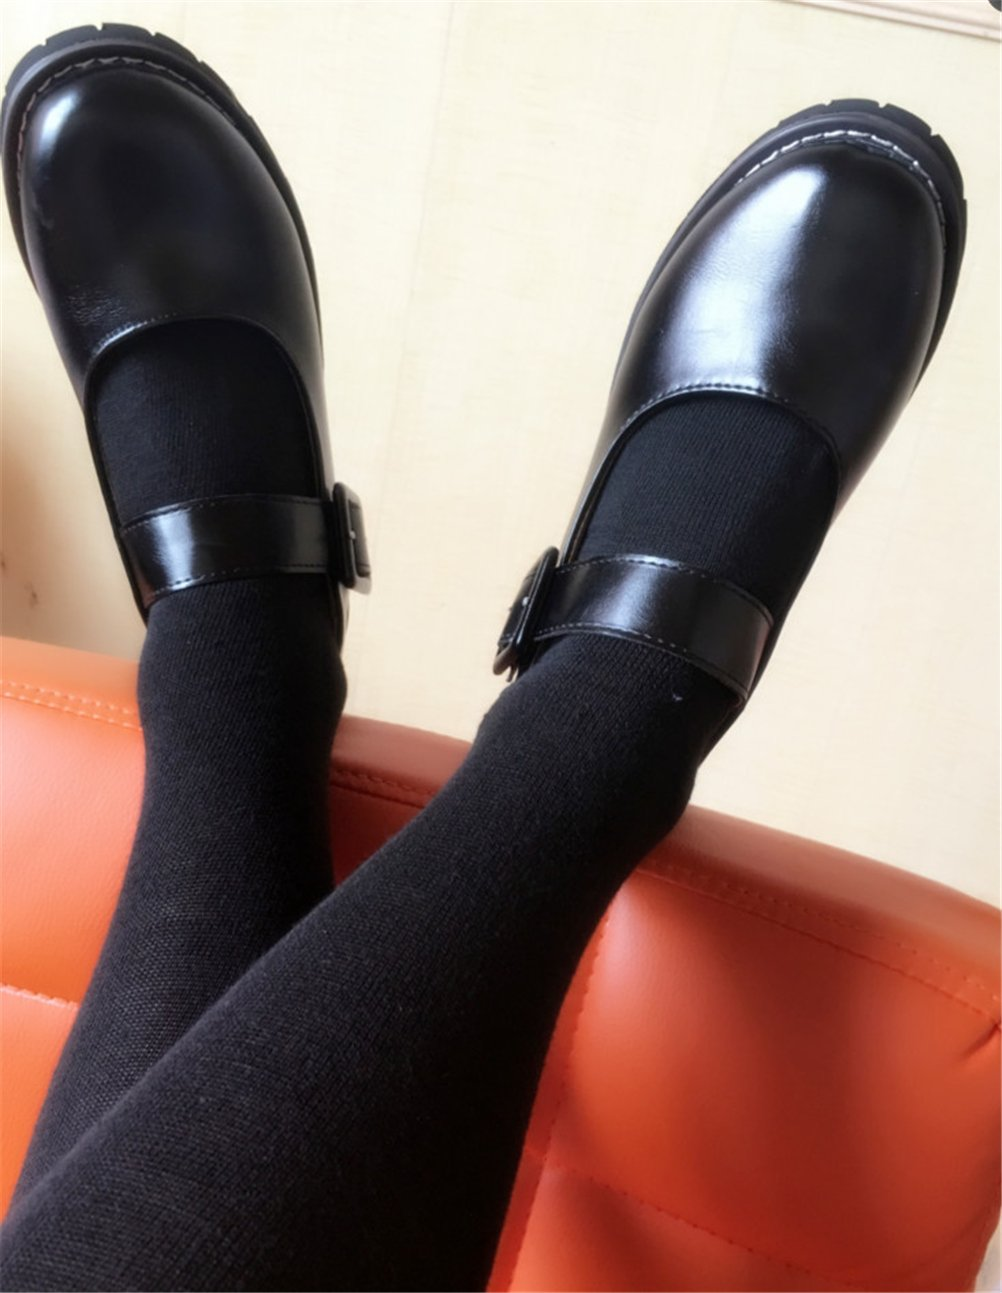 ACE SHOCK Women's Girl's Lolita Low Top Japanese Students Maid Uniform Dress Shoes (5.5, Black) by ACE SHOCK (Image #8)